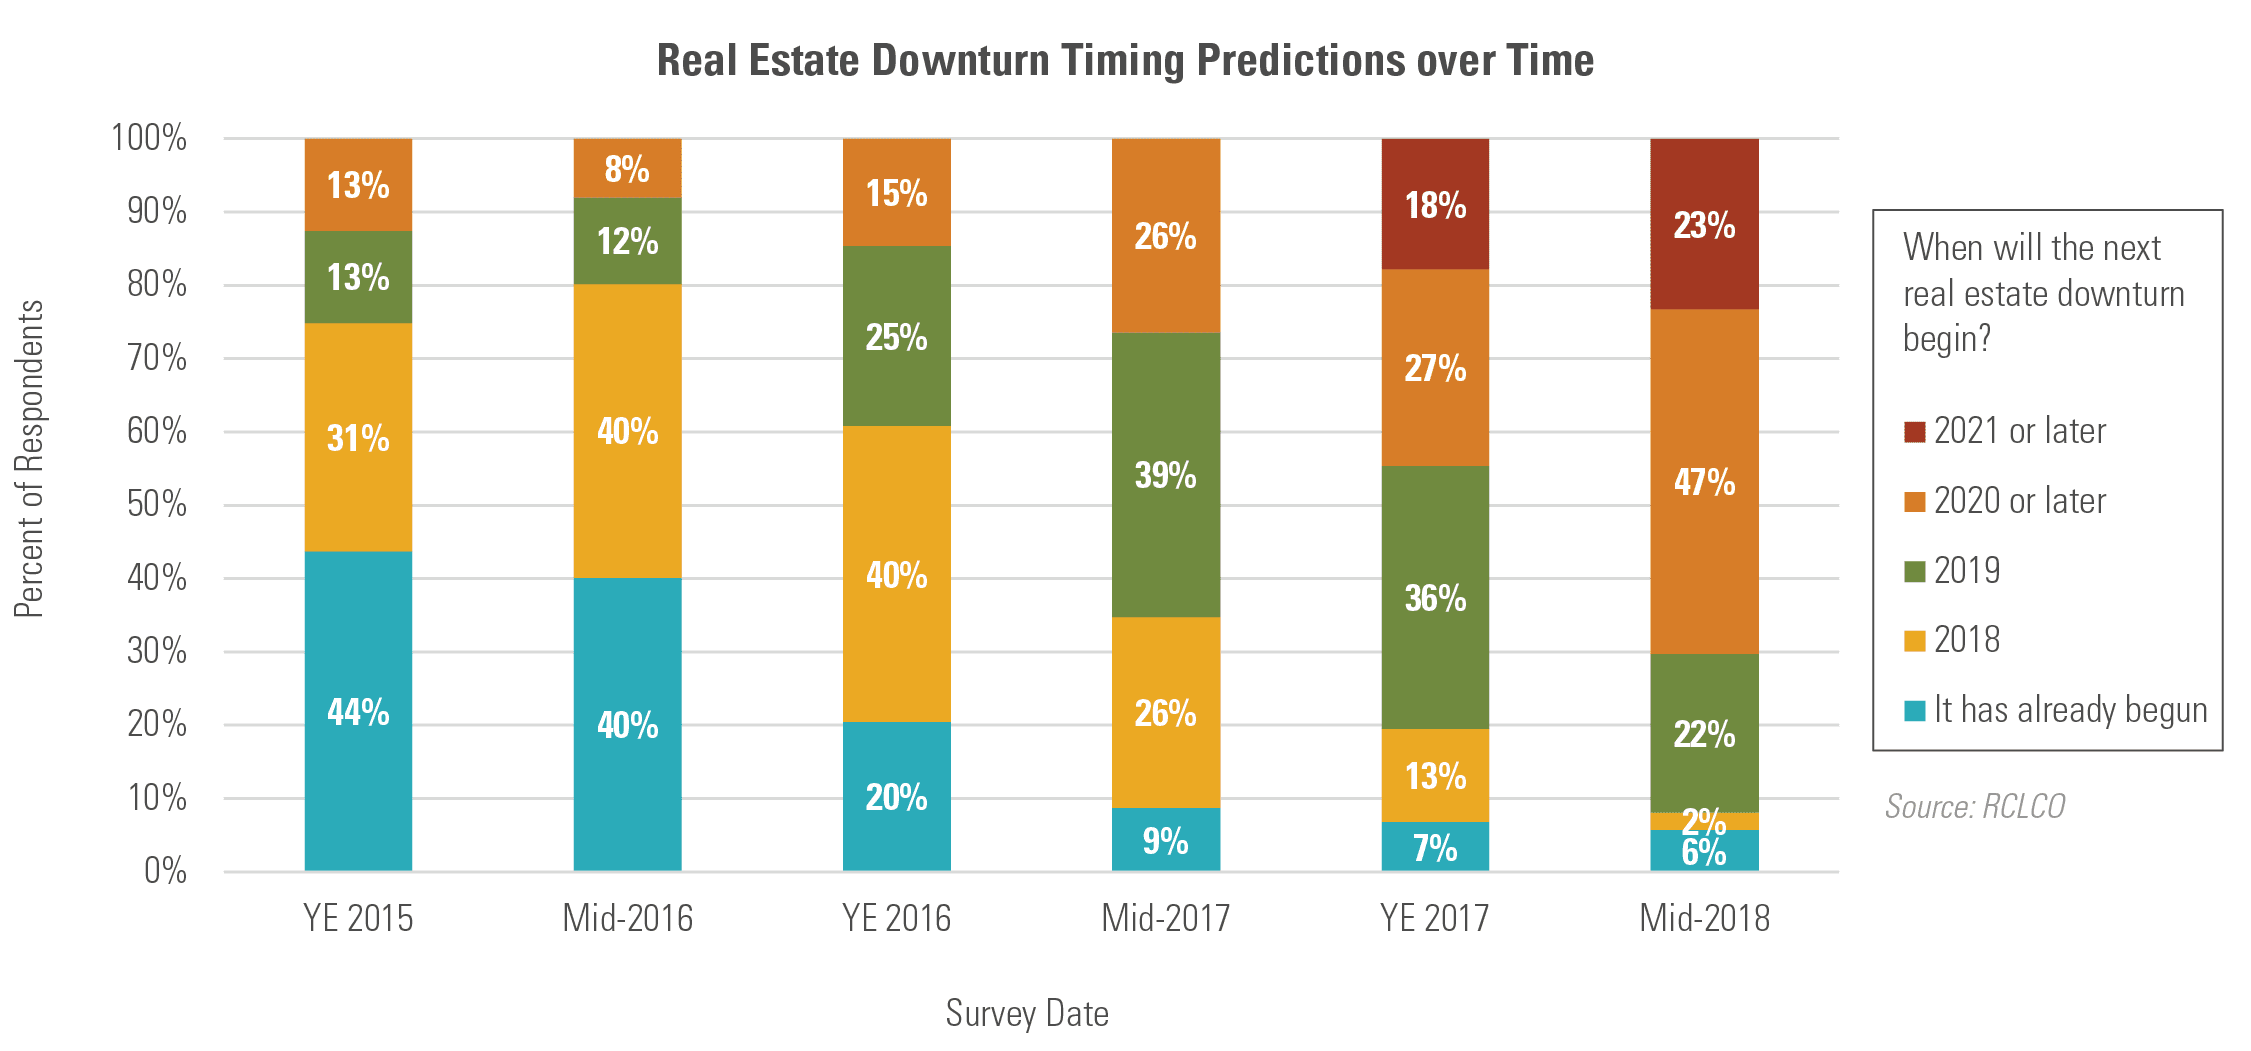 Real Estate Downturn Predictions over Time